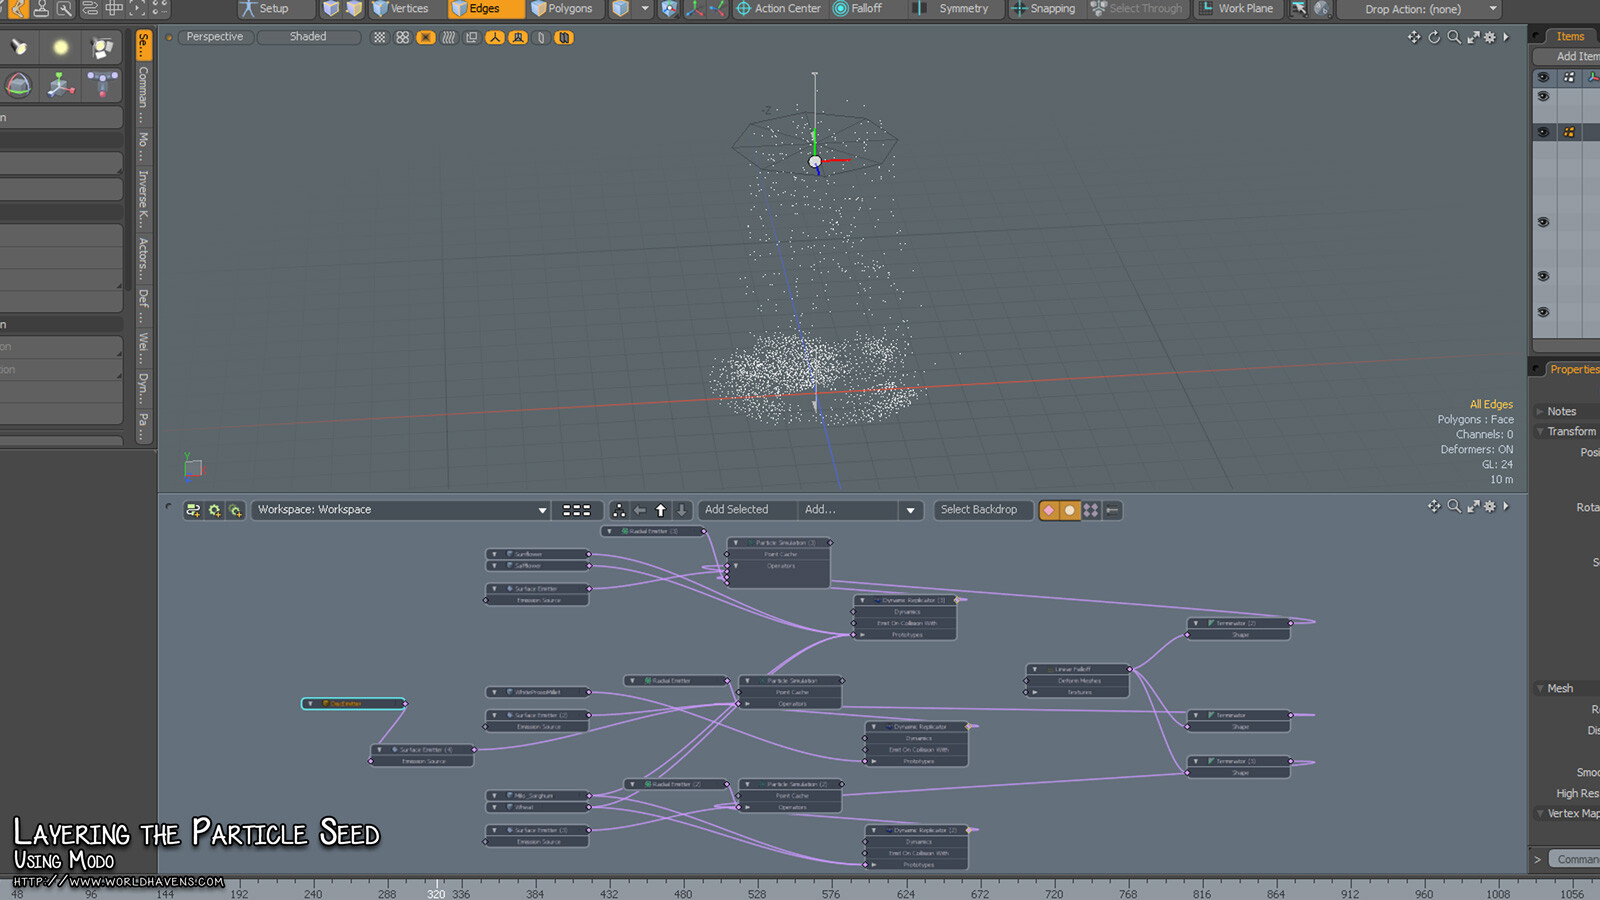 A screencapture of one of the particle systems from Modo that was used to generate the seed for the initial texture maps.